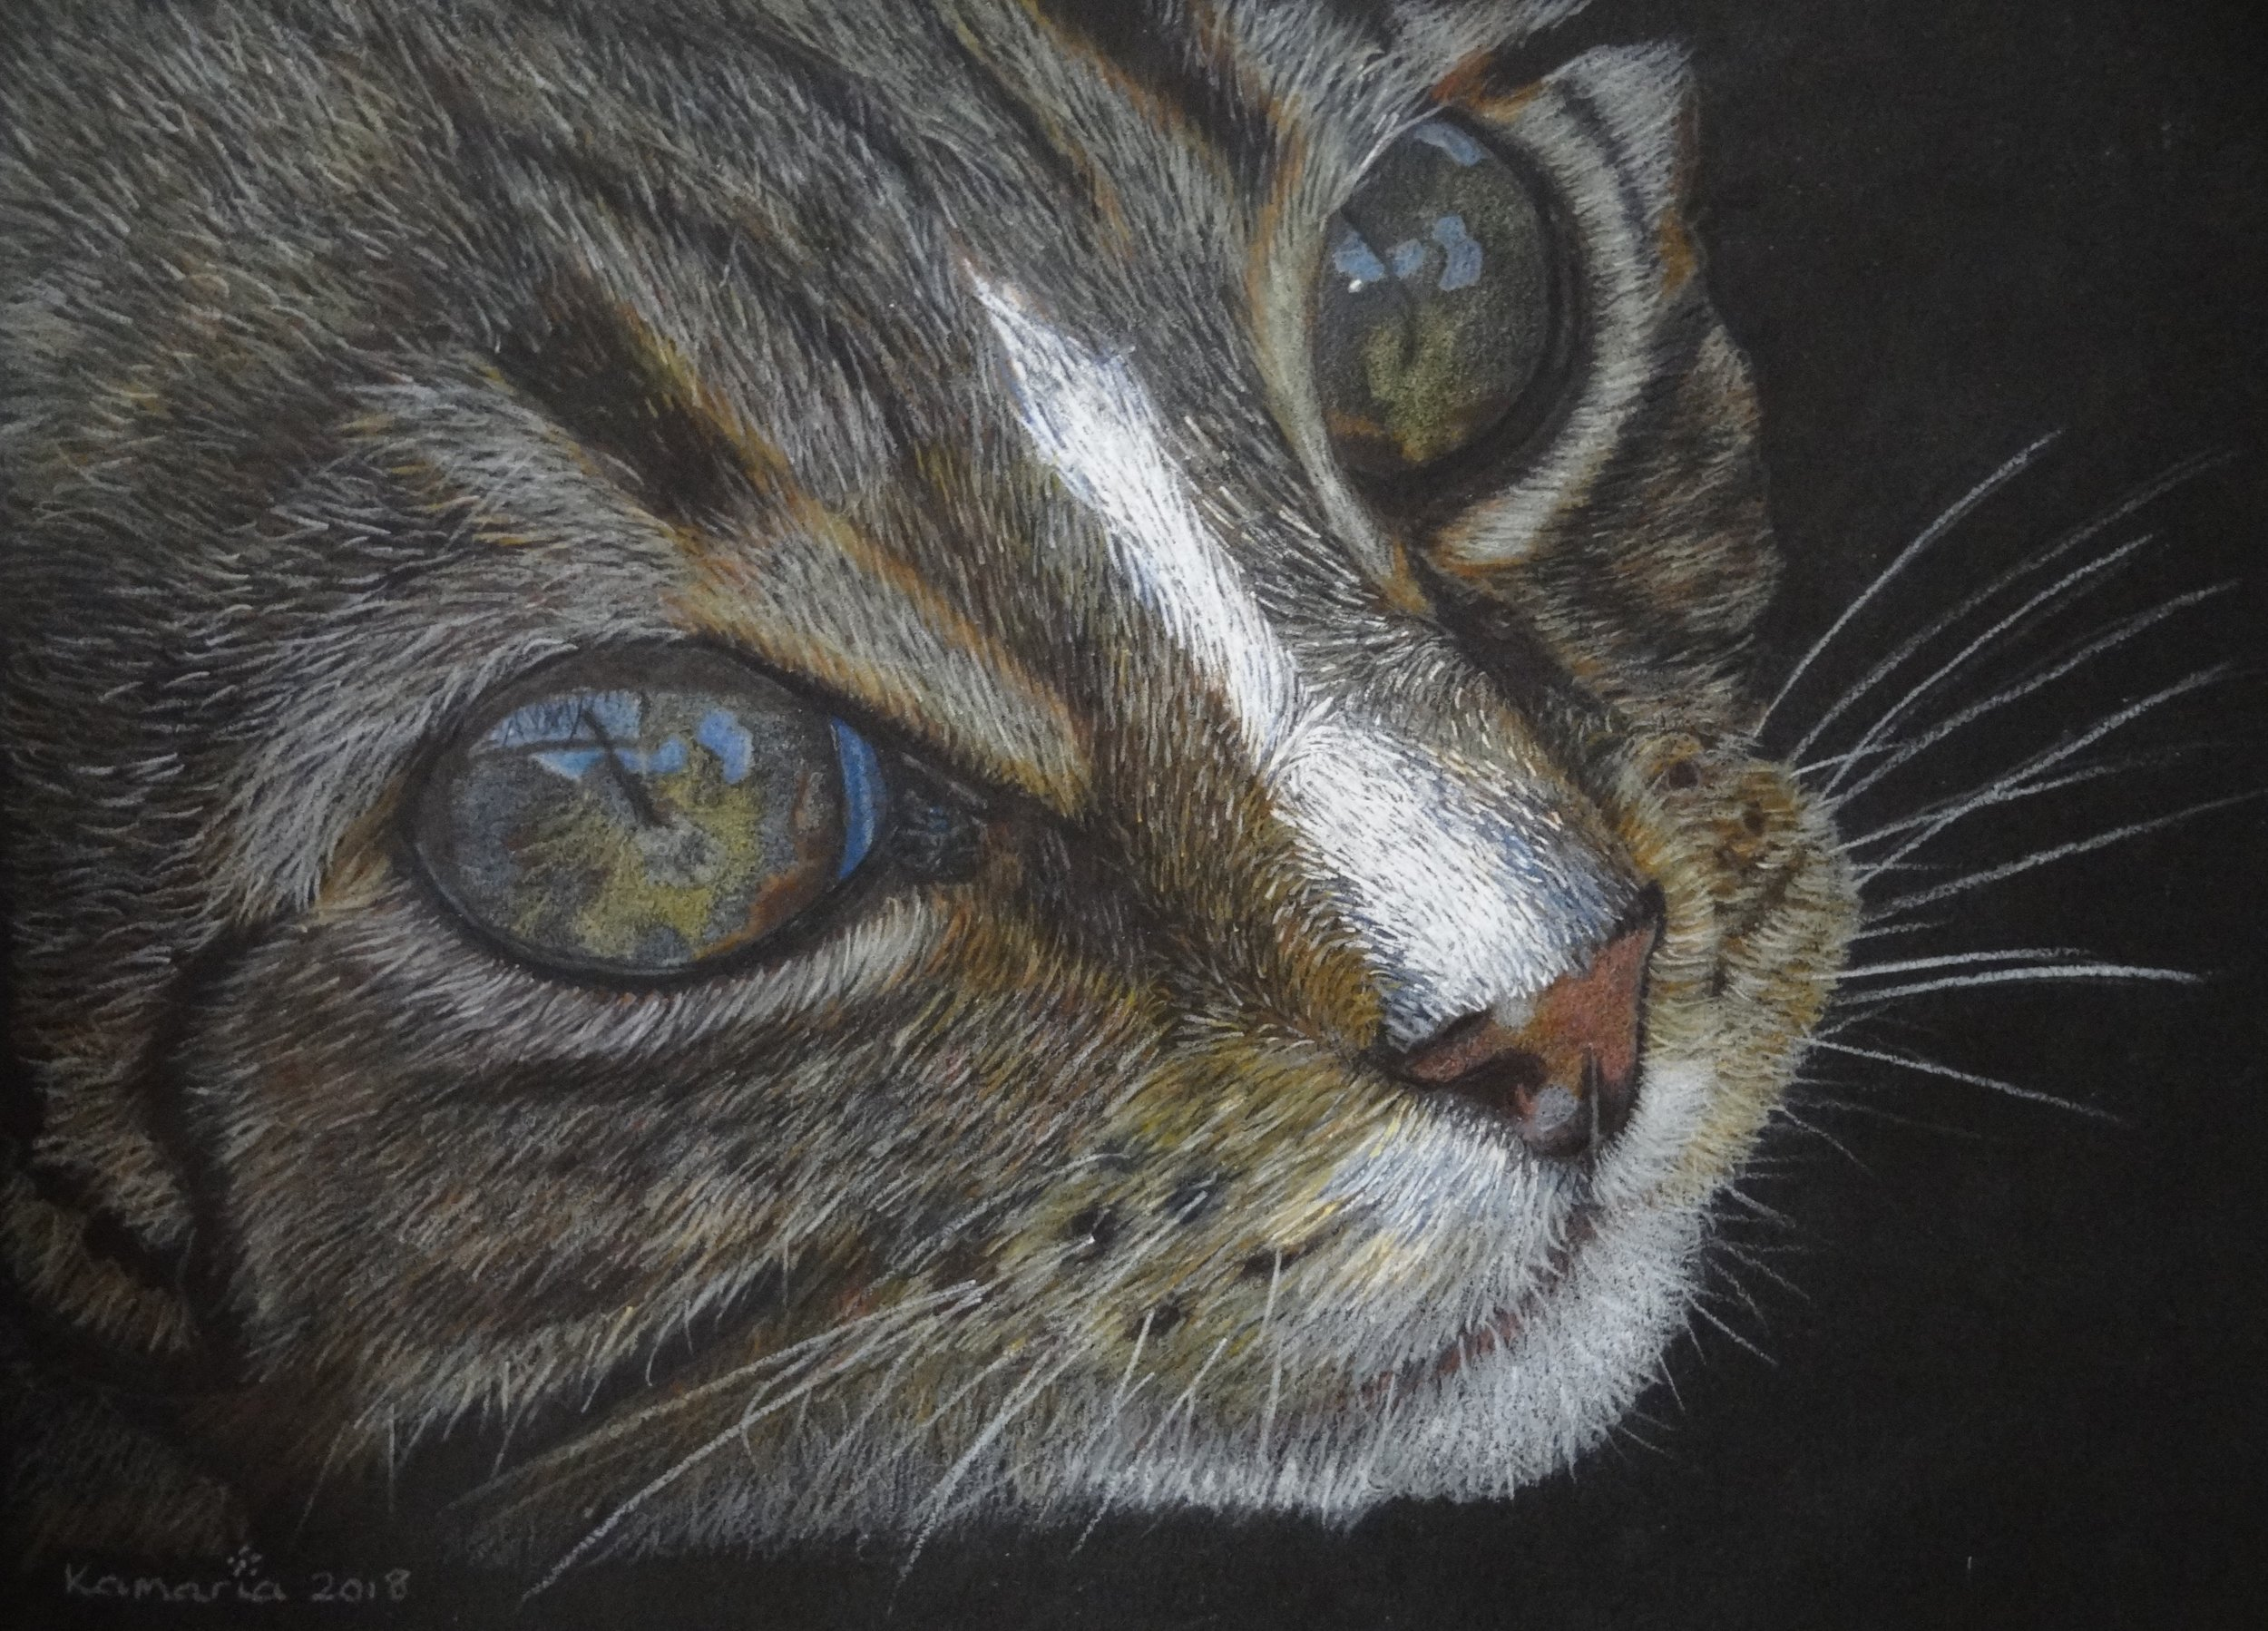 Karen Hunt, Karen Hunt - Cats Eyes, Pencil on paper, 23cm x 30cm